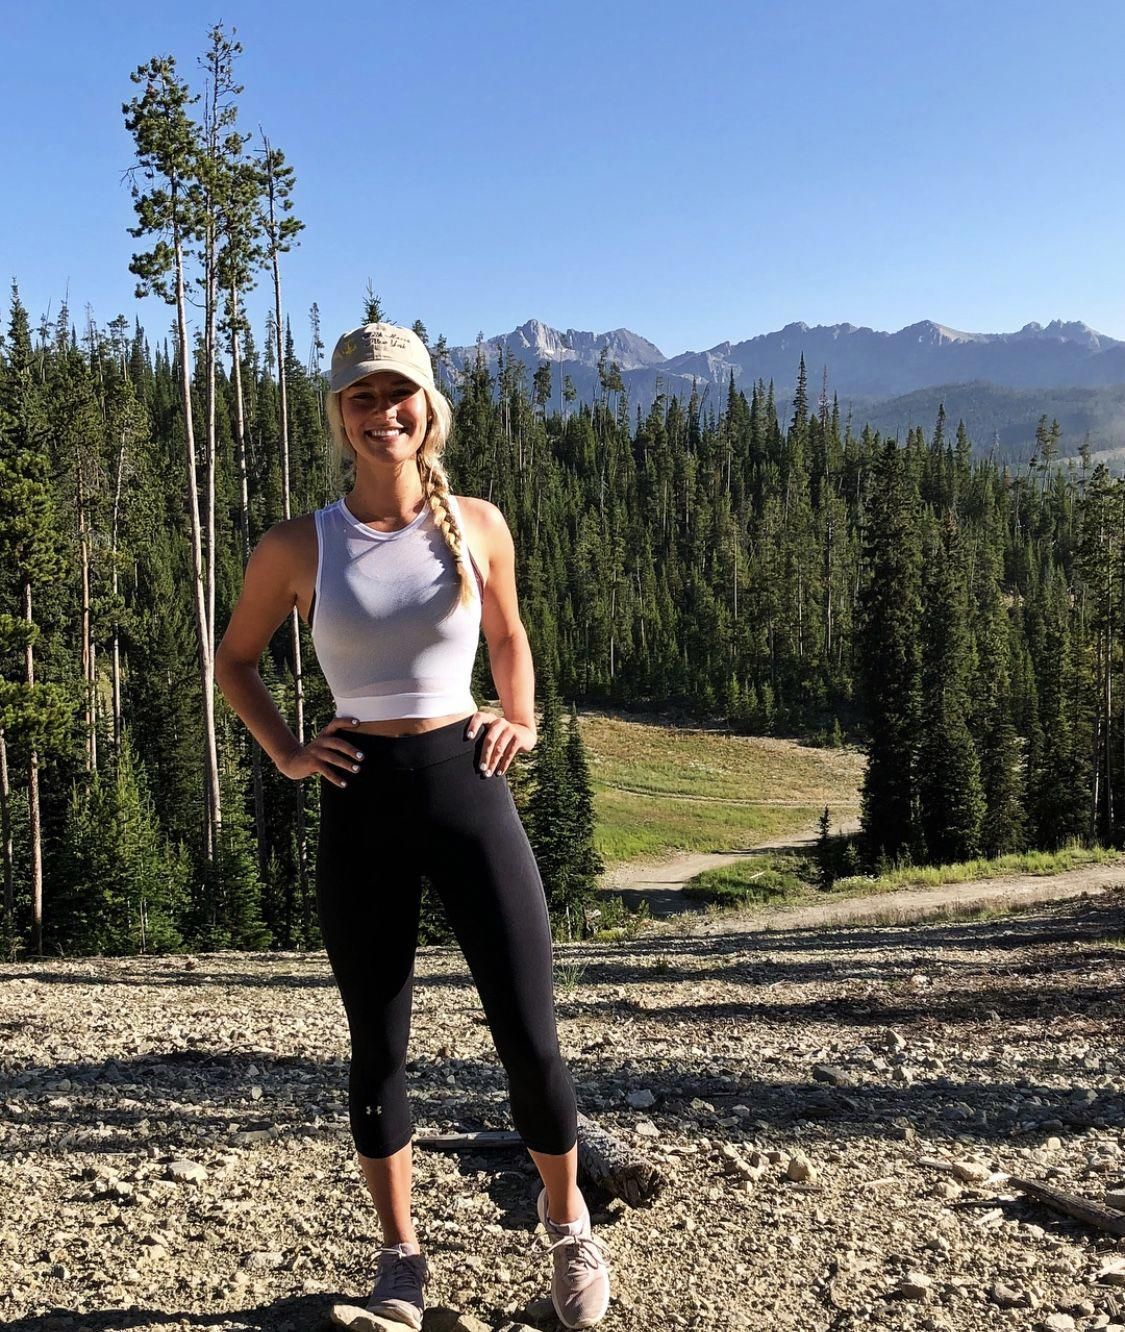 hiking outfit #hiking #outfit cute hiking outfit, hiking outfit winter, converse run star hike outfit, hiking outfit summer, run star hike outfit, hiking outfit spring